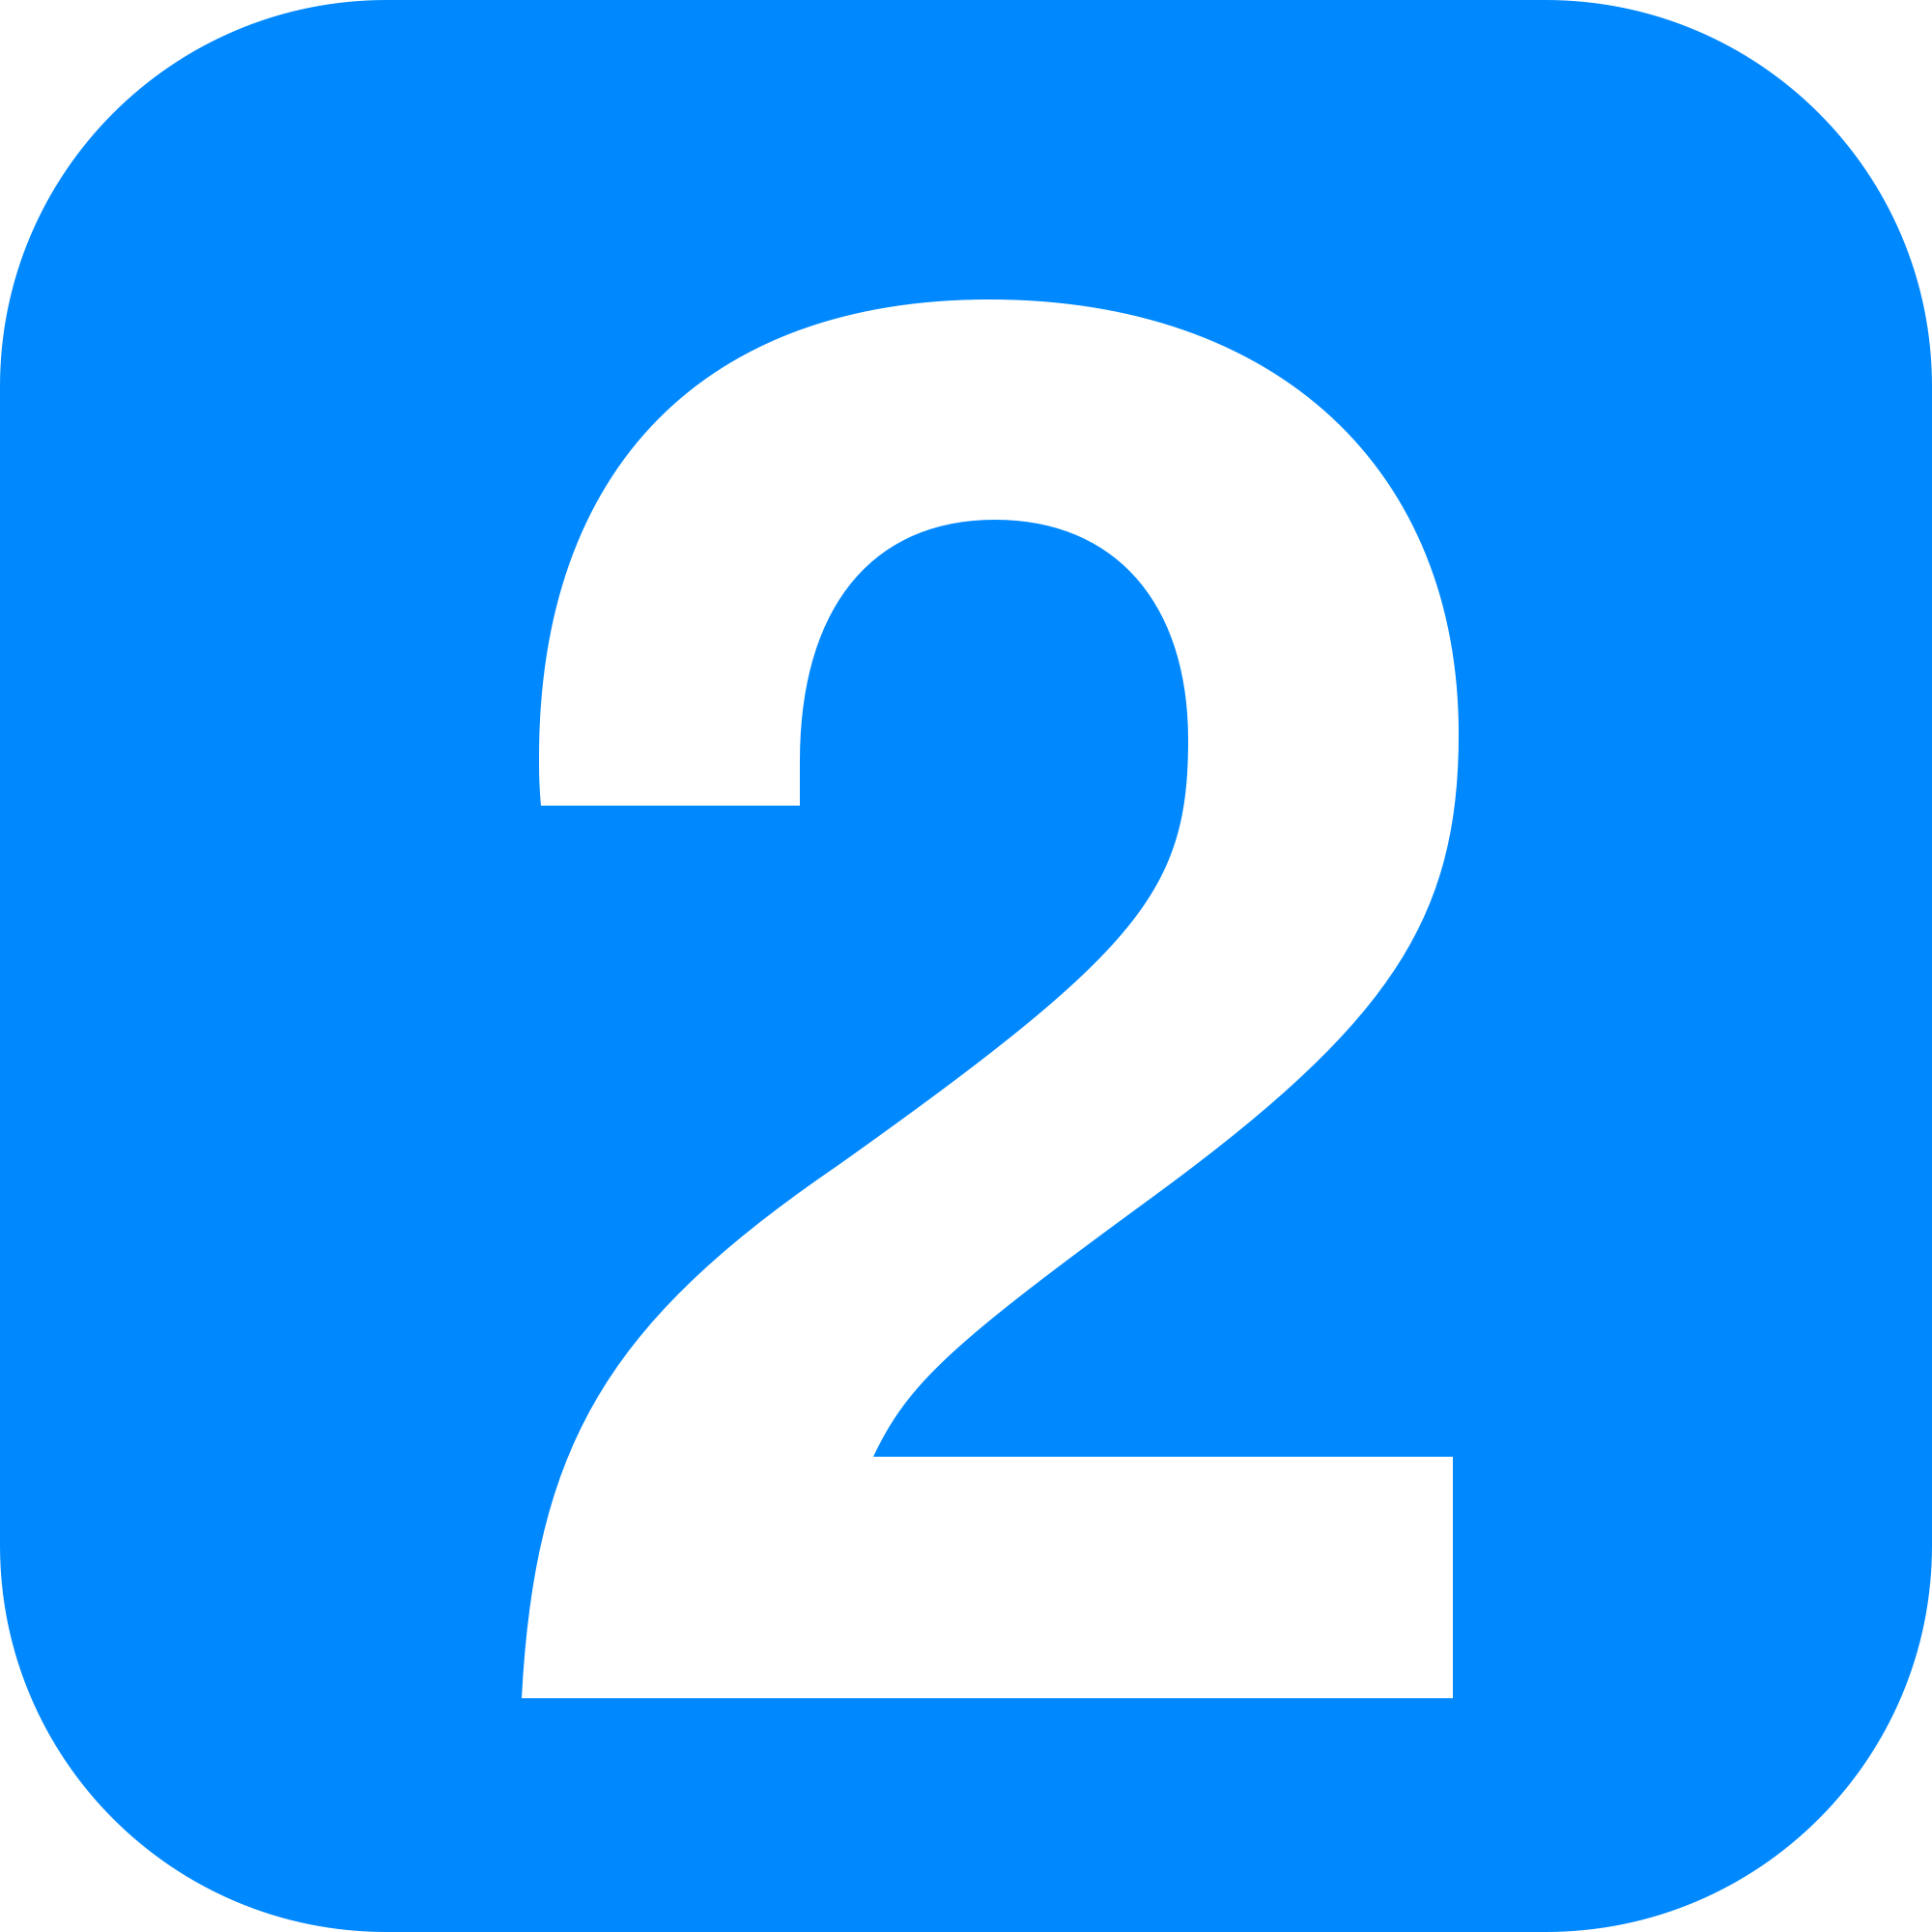 Number 2 In Light Blue Rounded Square